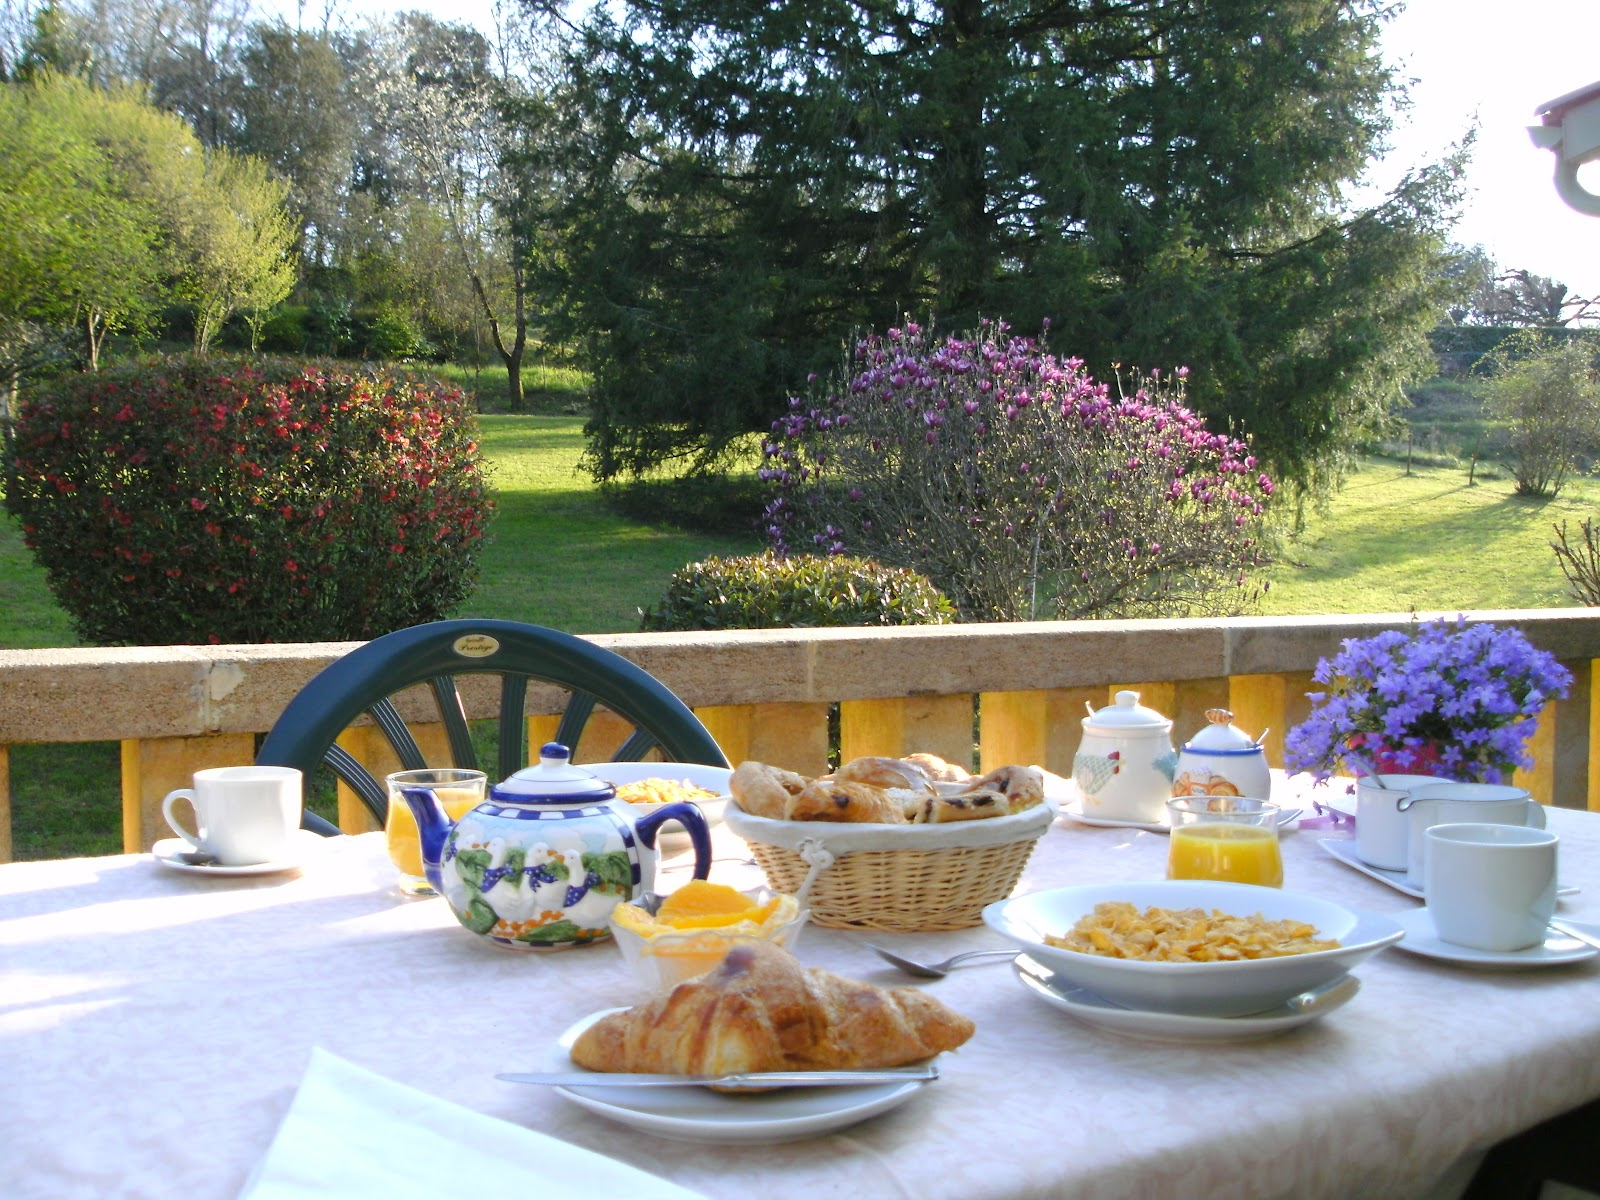 bed and breakfast france top hd wallpapers On breakfast terrace